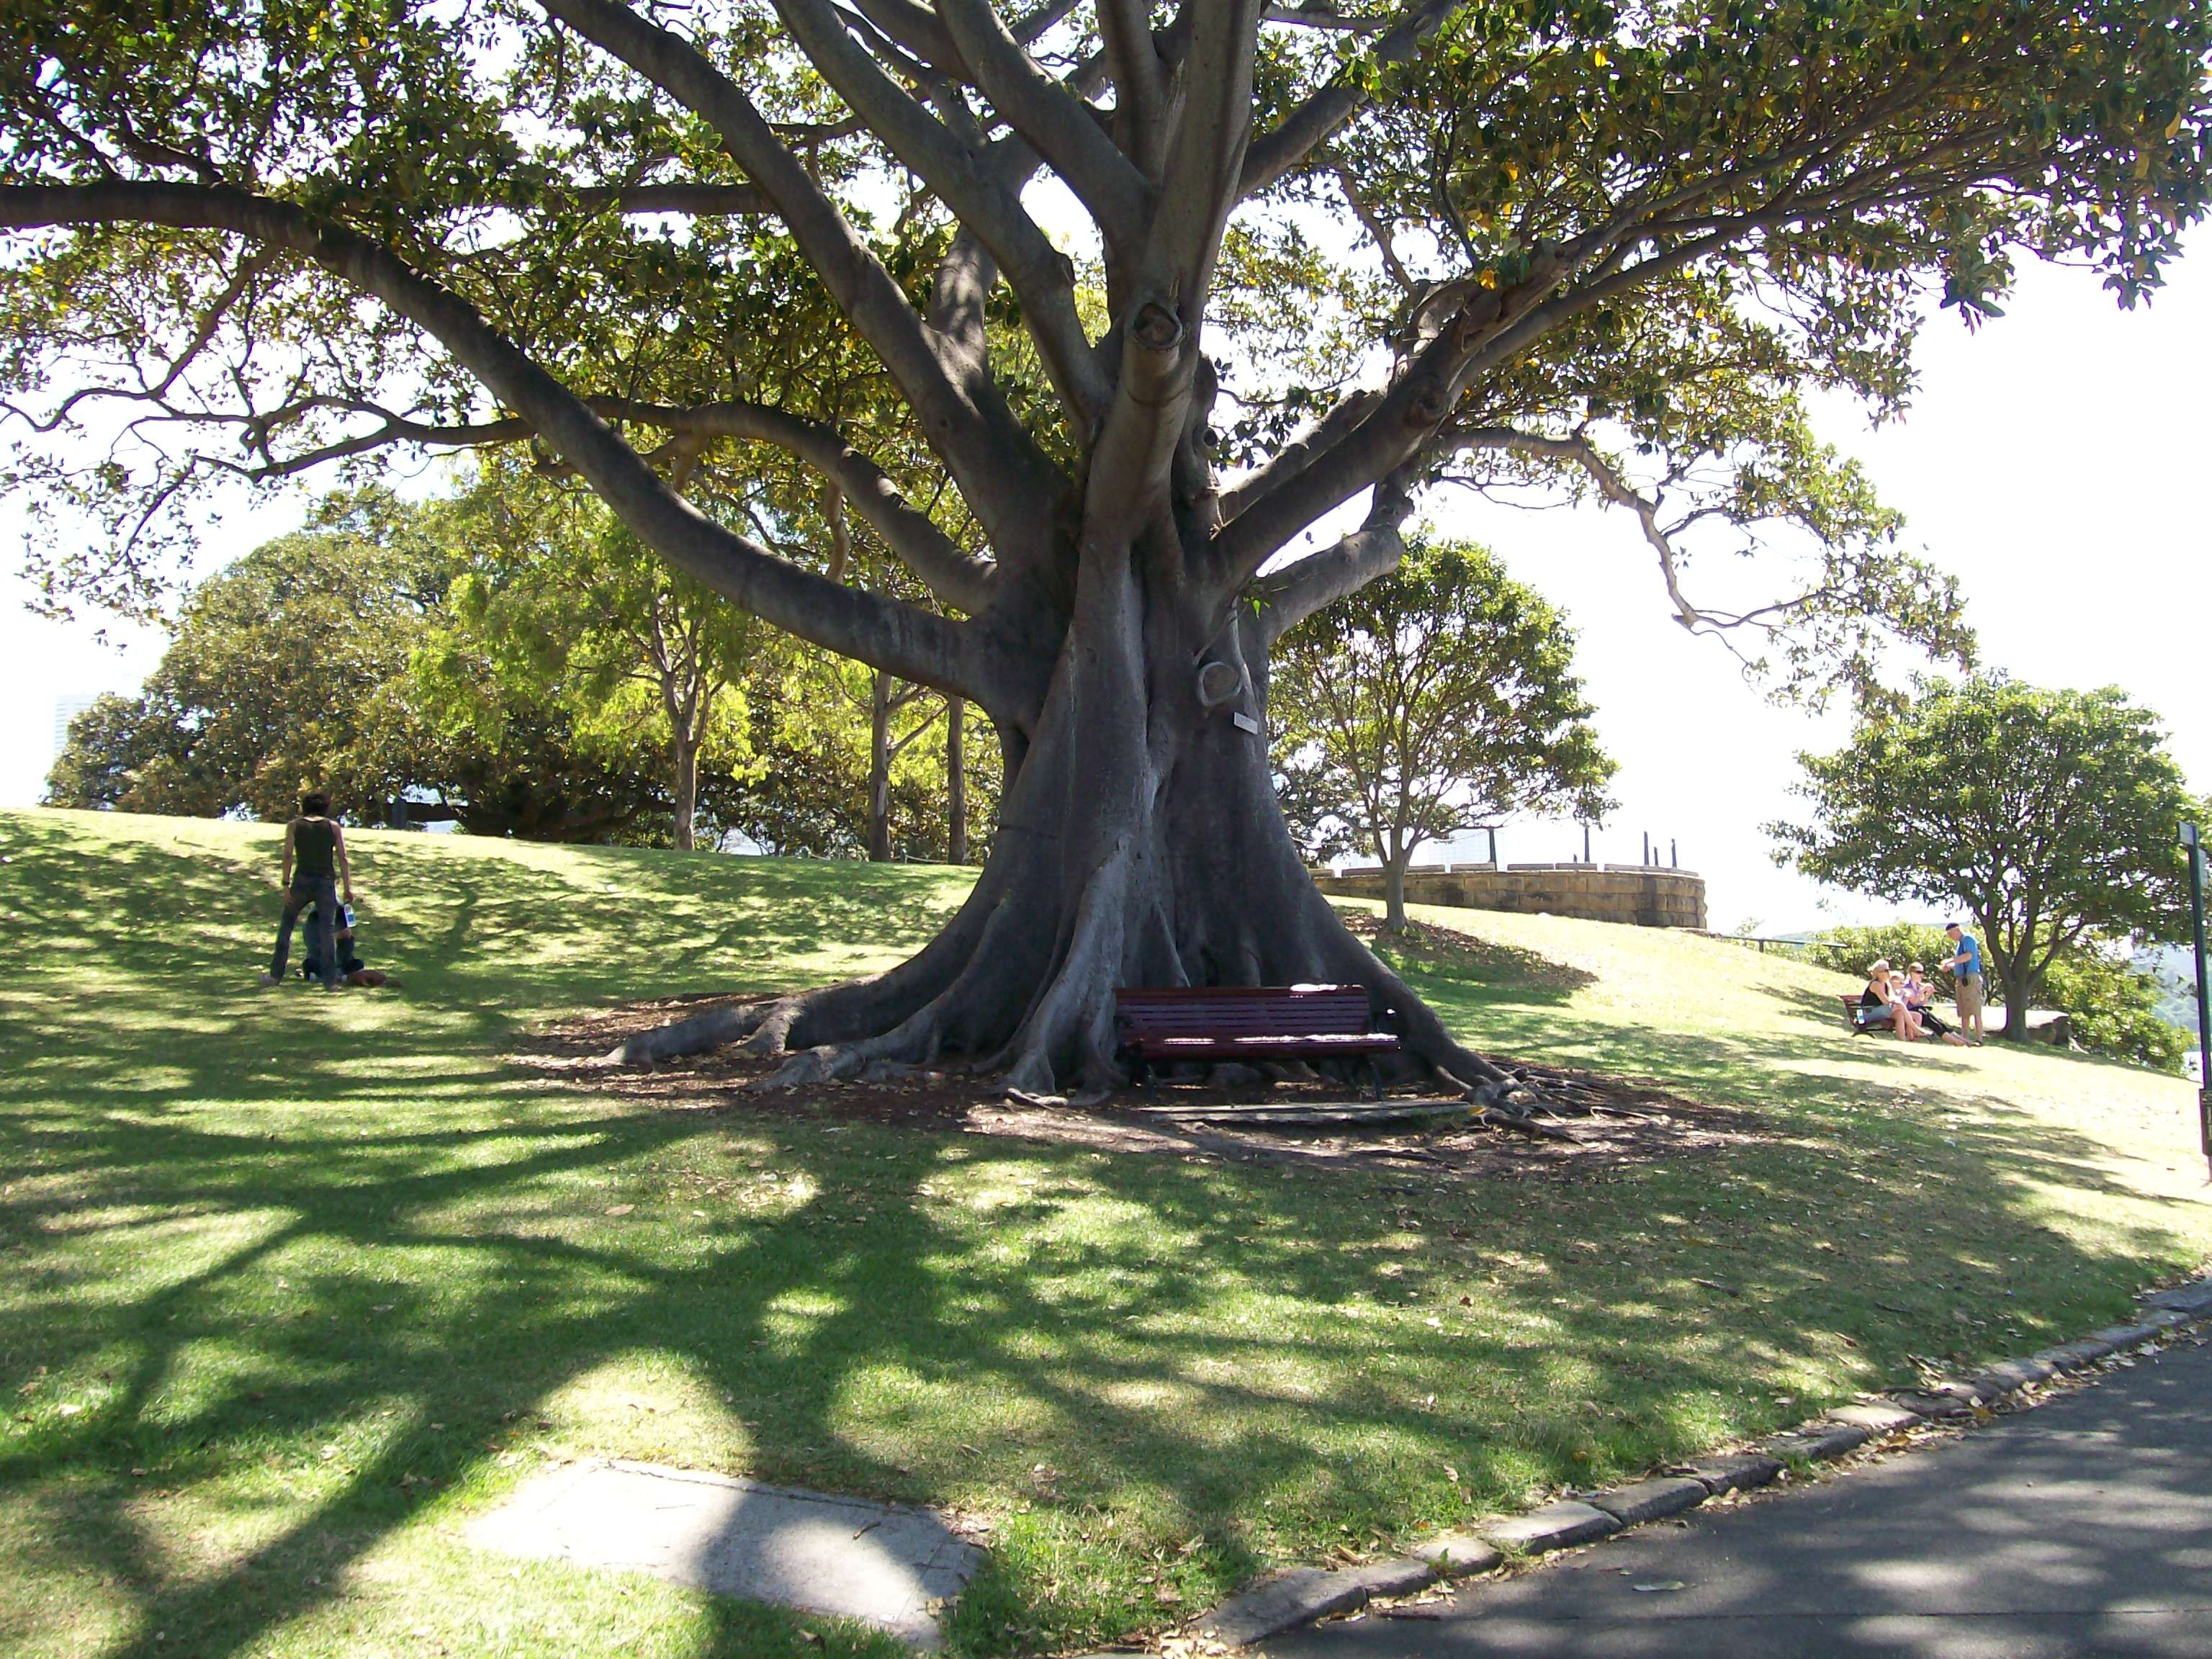 Unusual tree in Sydney 2009 Australia Garden, Outdoor